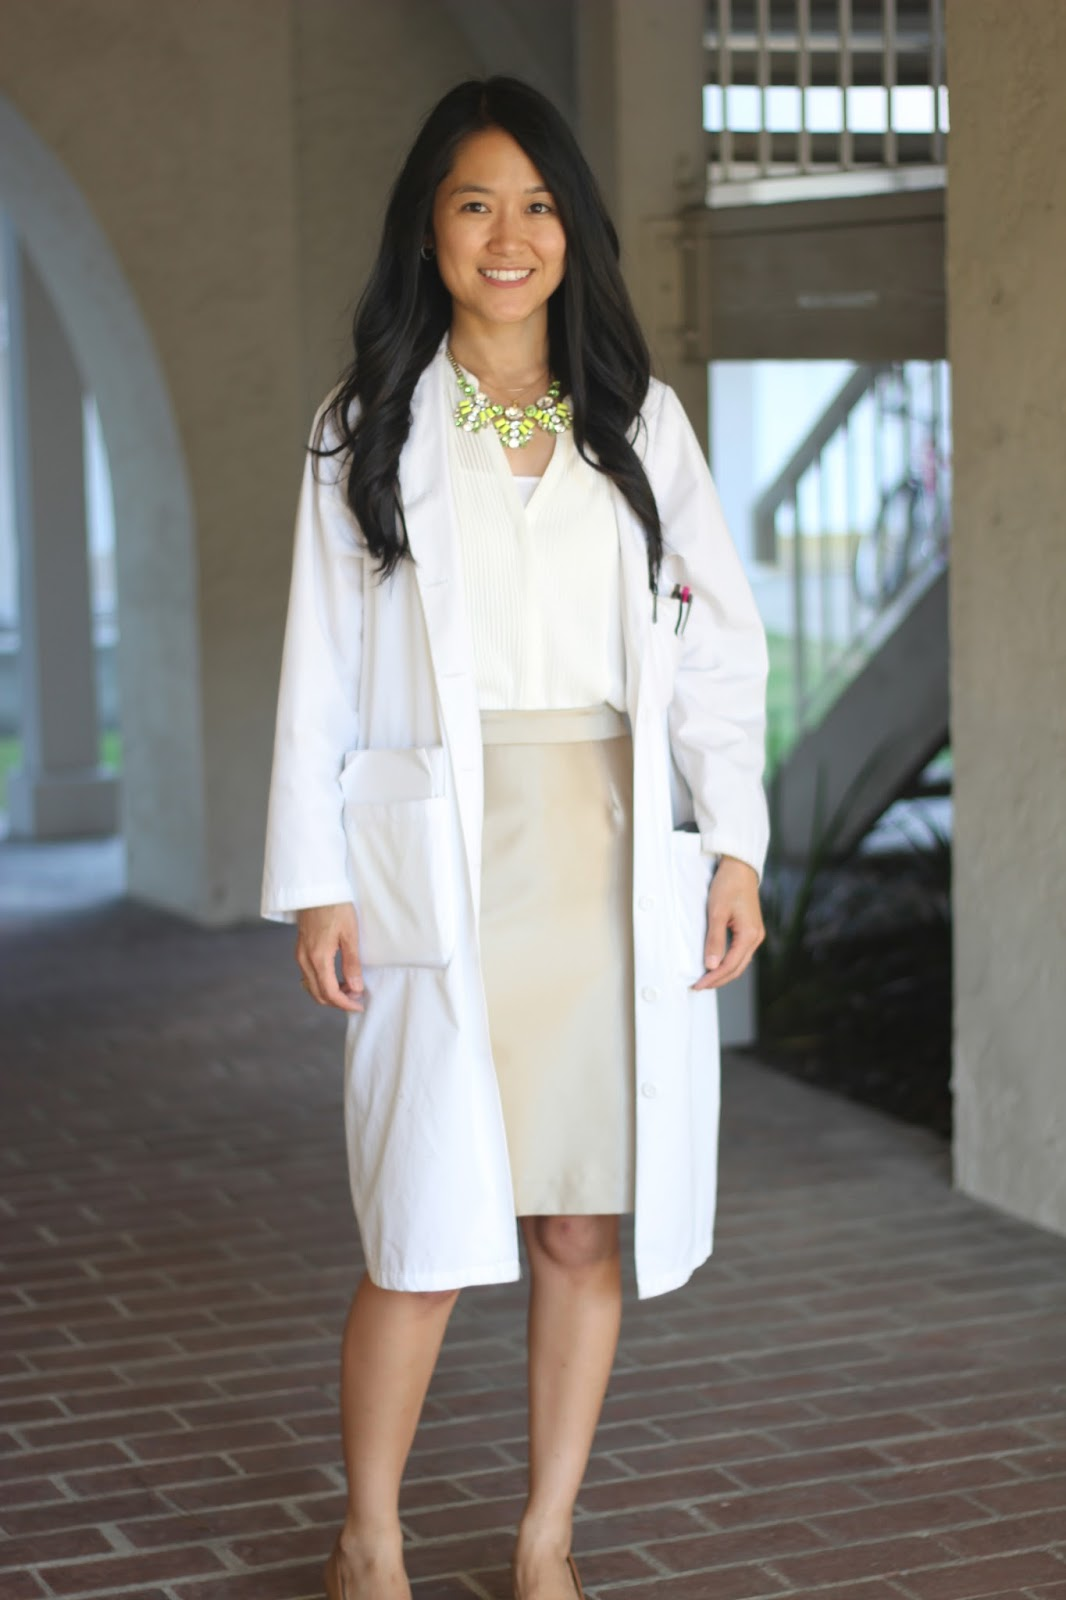 Life By Appointment: Work Outfit Series: Under My White Coat #3